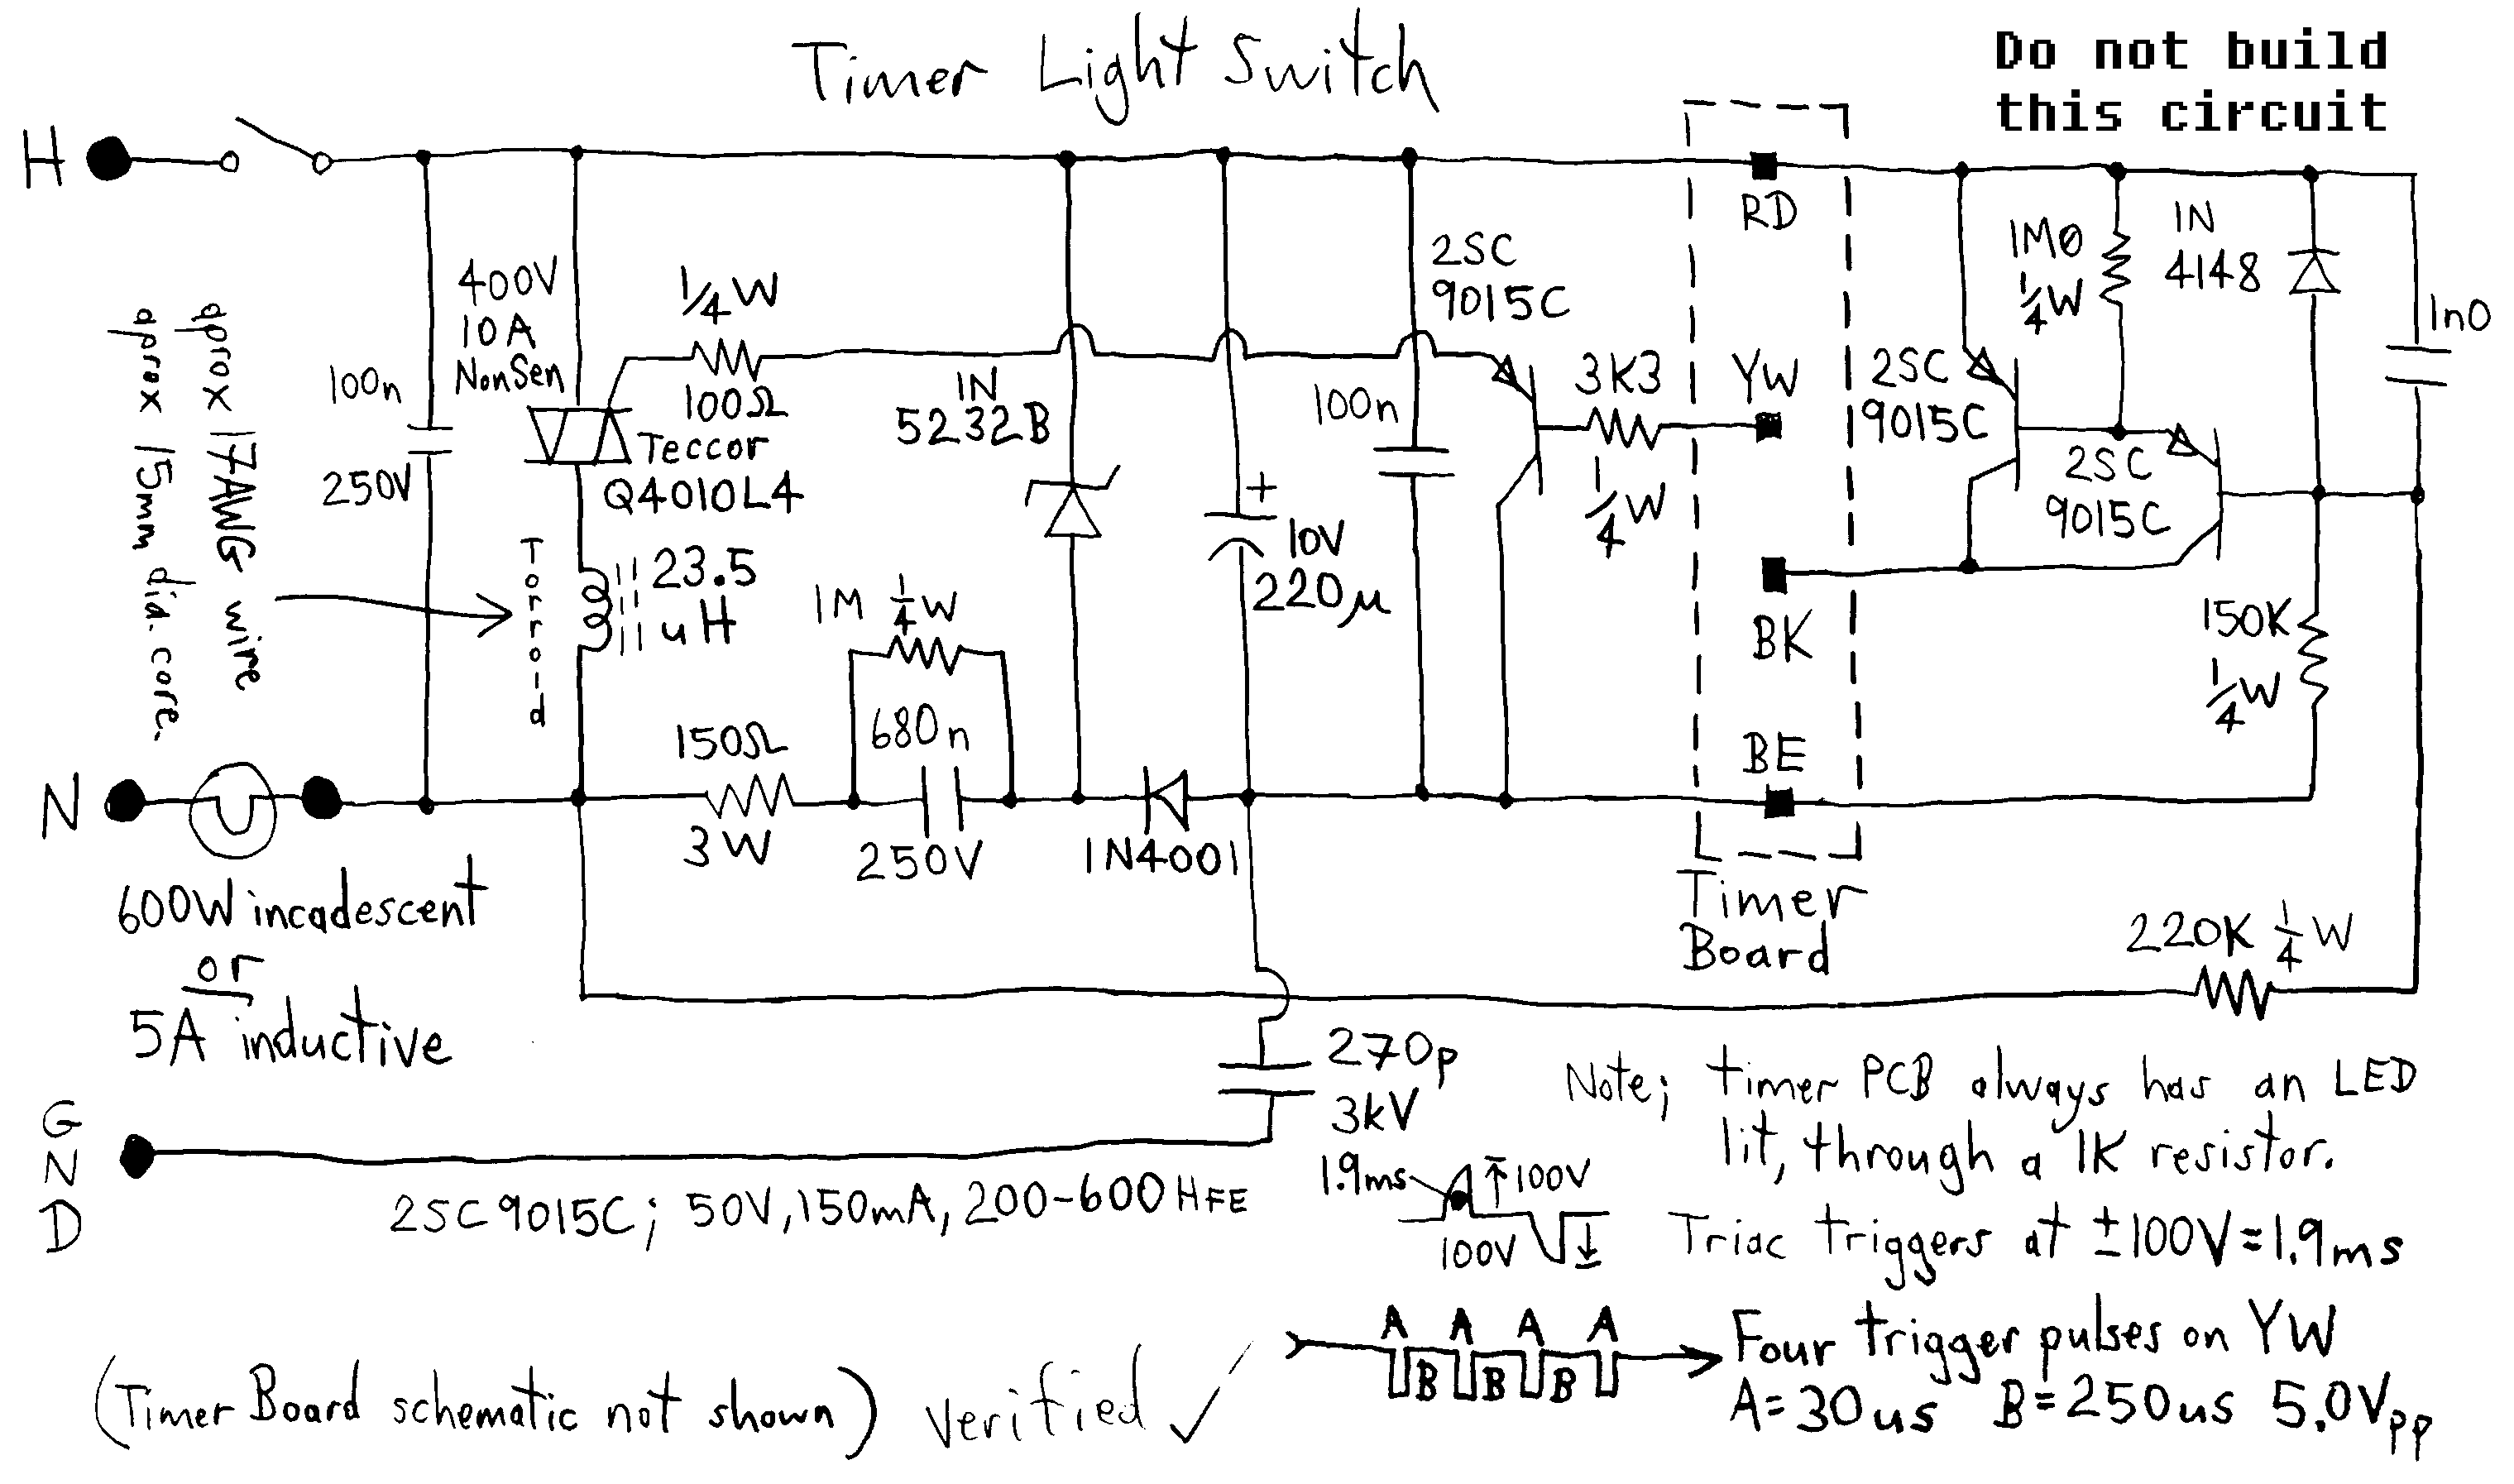 Digital Timer Light Switch Under Switching Circuits